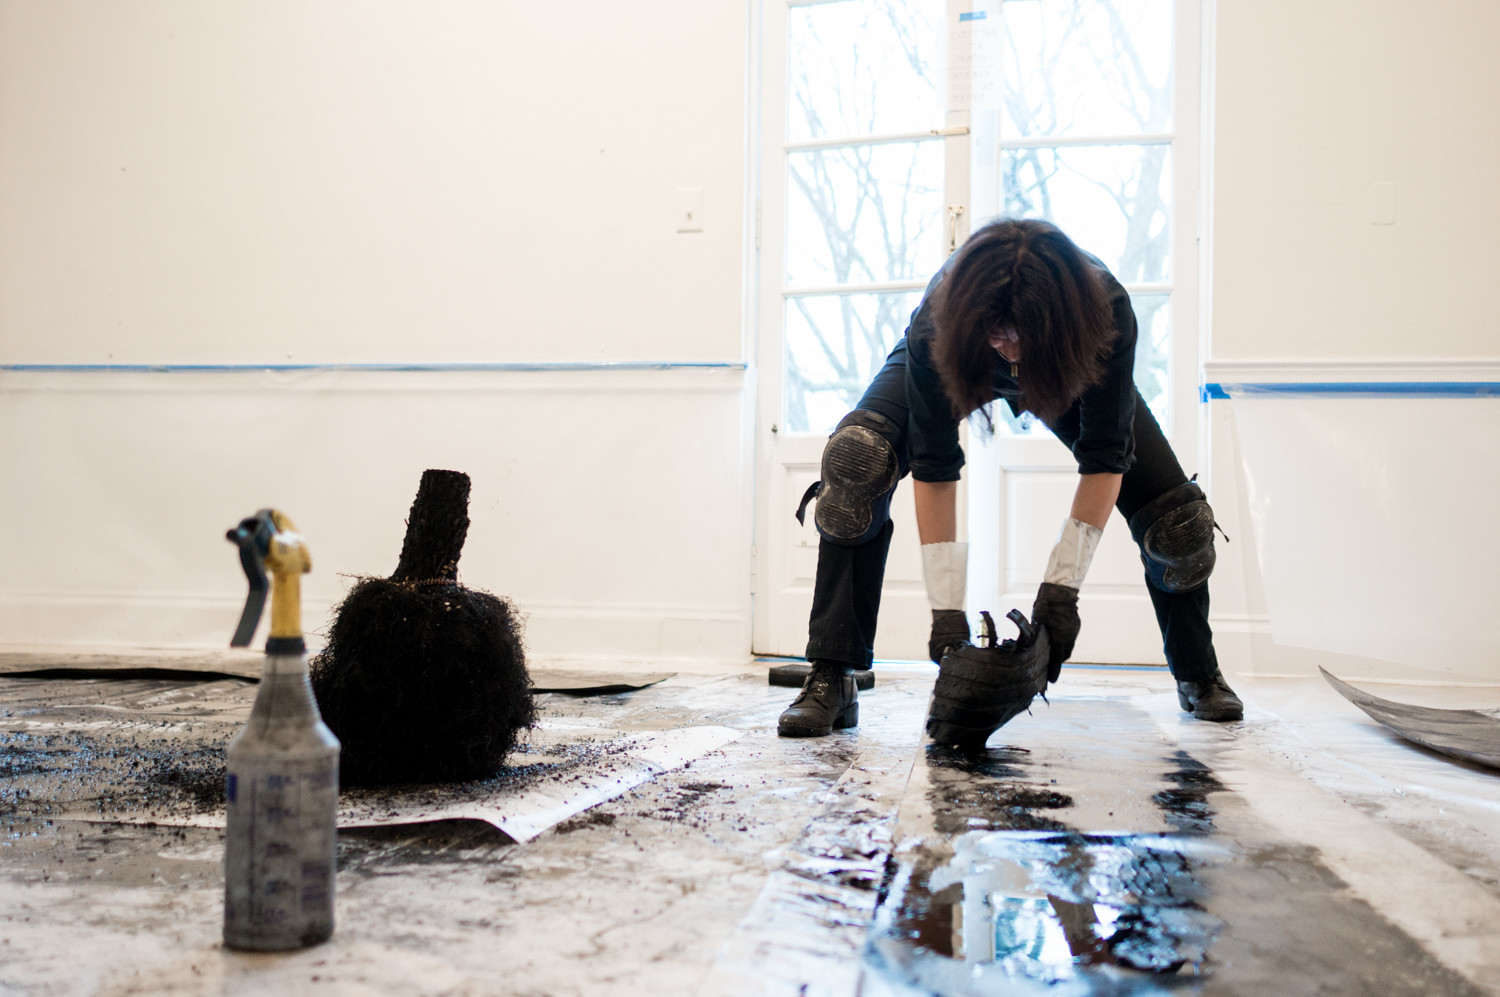 Athena LaTocha uses a tire tread to paint with sumi ink on paper at Wave Hill. LaTocha is an artist in residence at Wave Hill as part of its winter workspace program. LaTocha uses found materials like sumi ink — made from the soot of pine branches in Japan — to make her paintings.